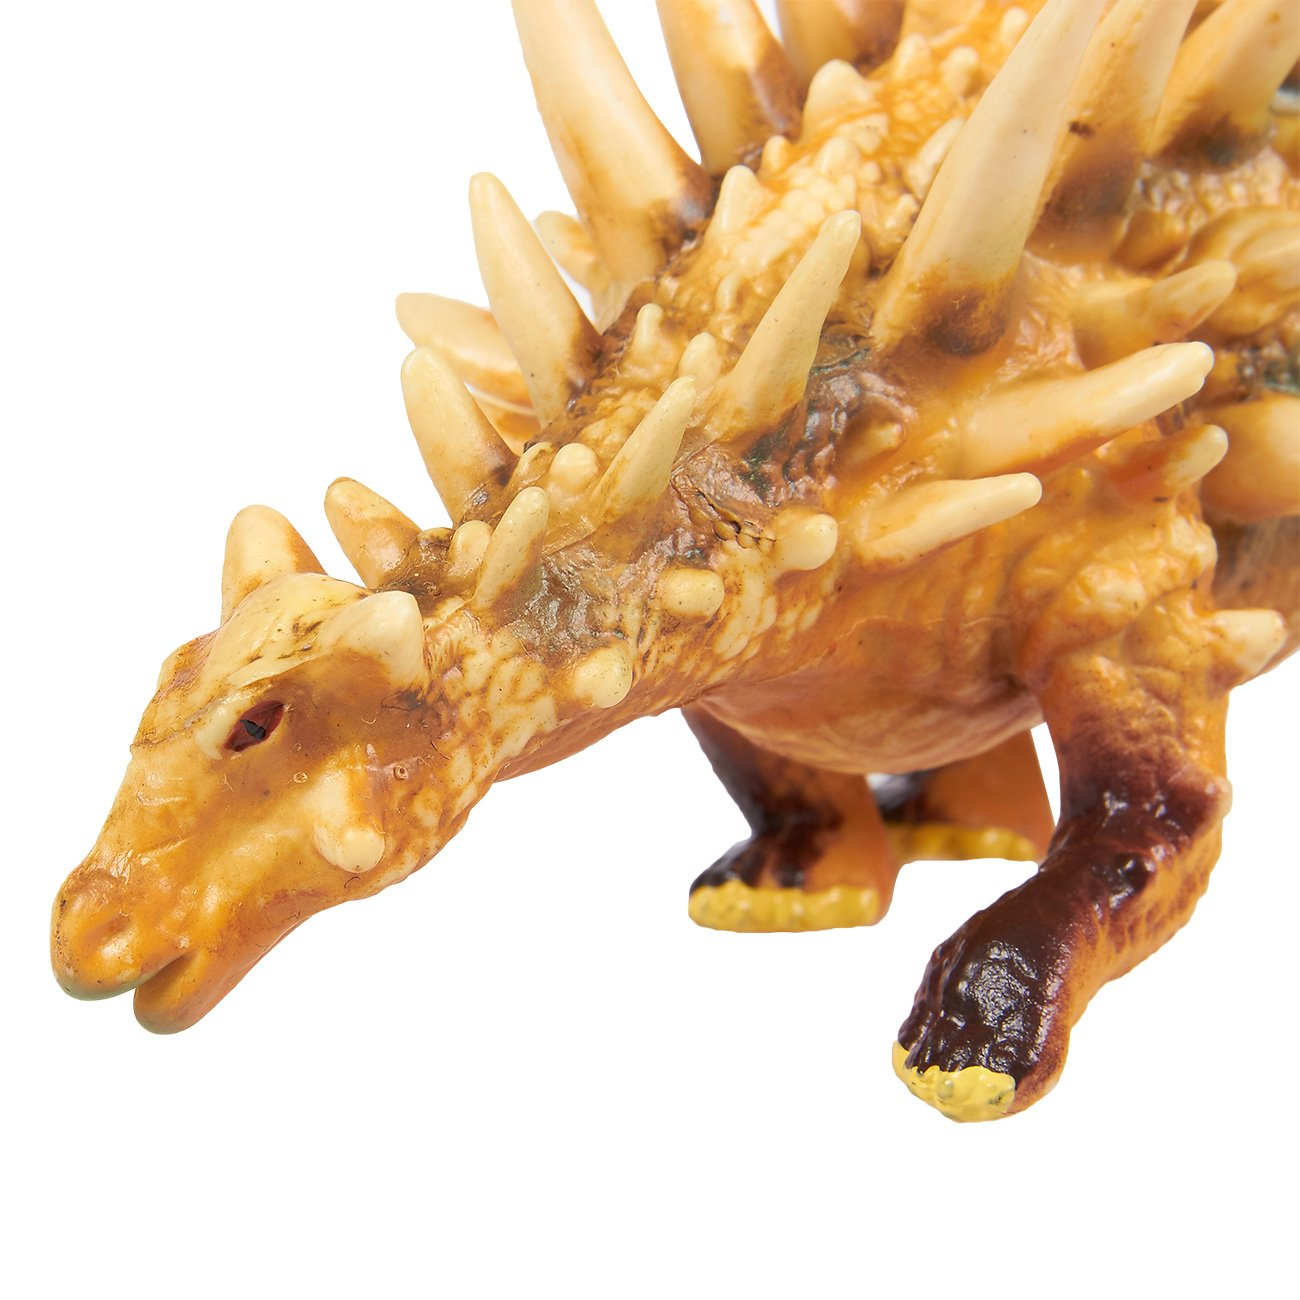 Themed Parties 9 x 2.5 x 3.2 Inches Decorations Brown Juvale Dinosaur Toy Polacanthus Figurine Realistic Plastic Toy Dinosaur Figure for Children